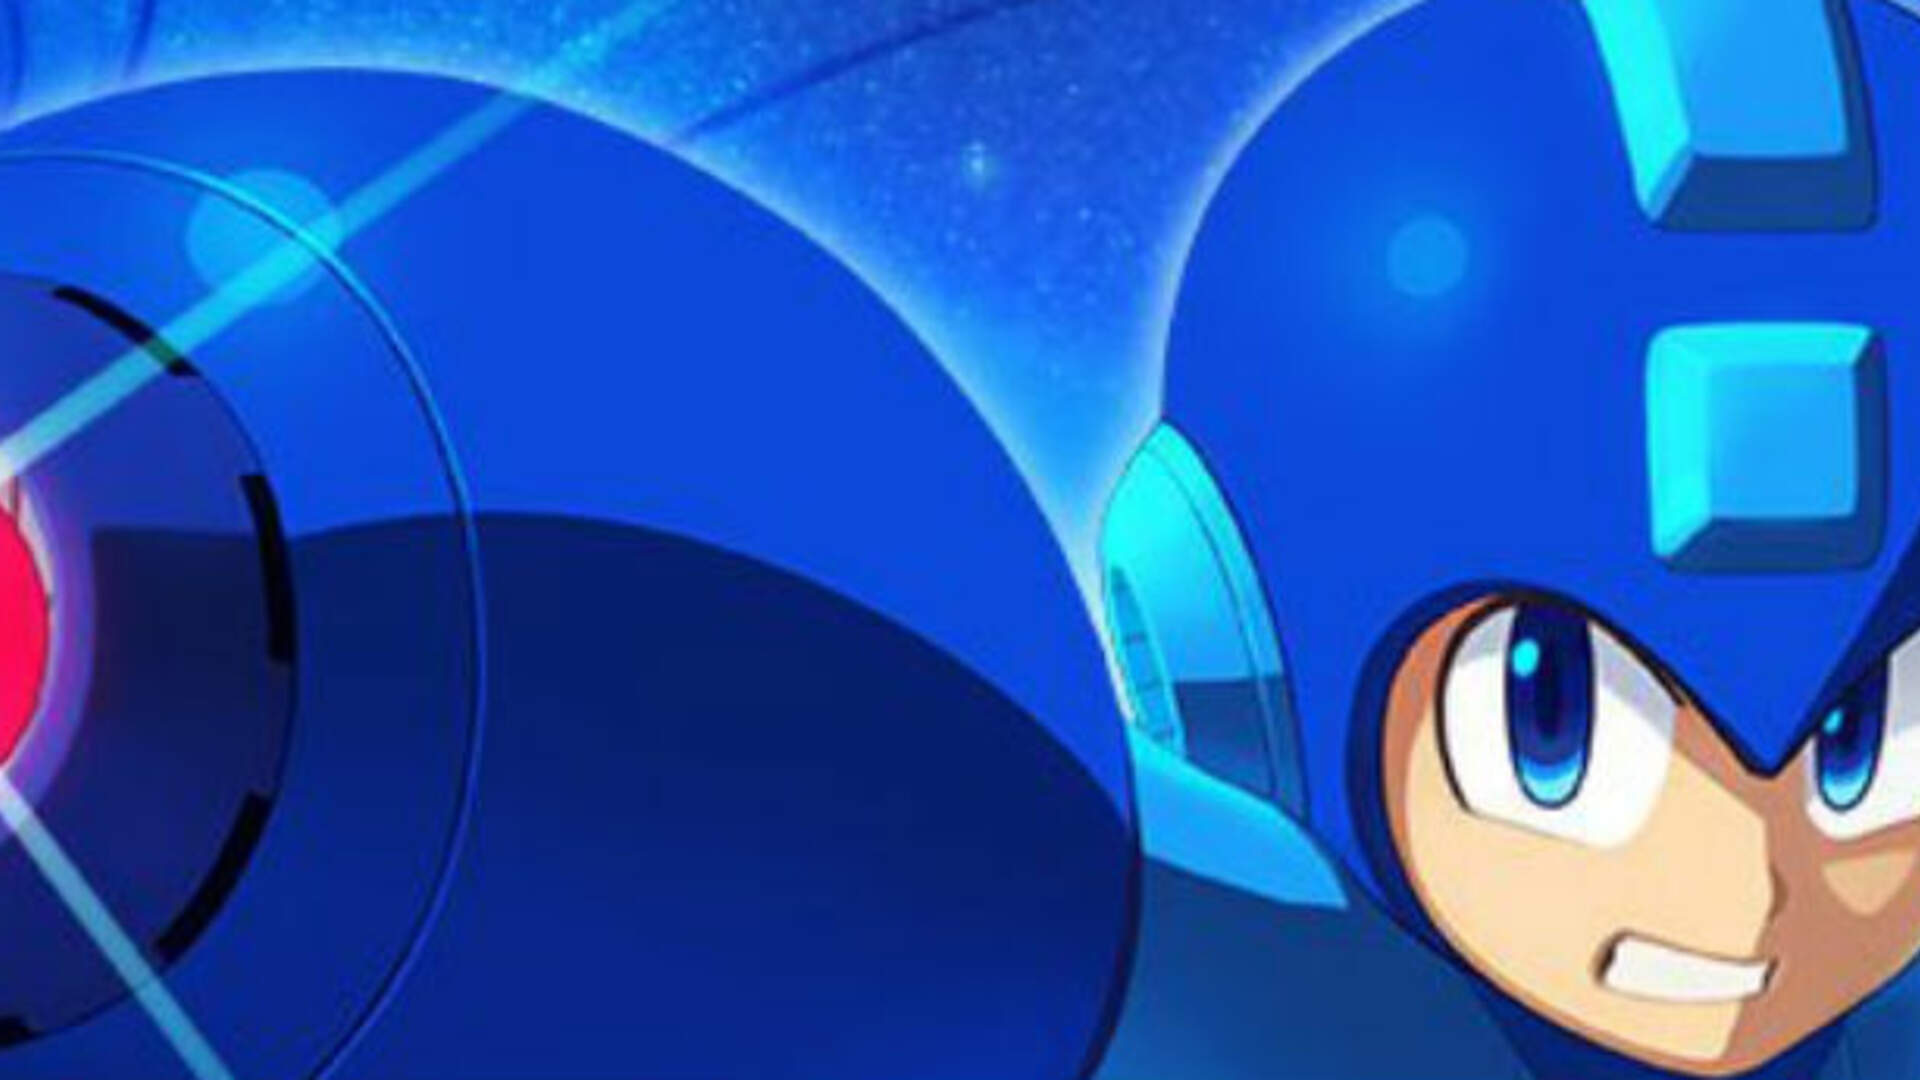 Mega Man 11 Release Date Announced for PS4, Xbox One, PC, and Switch